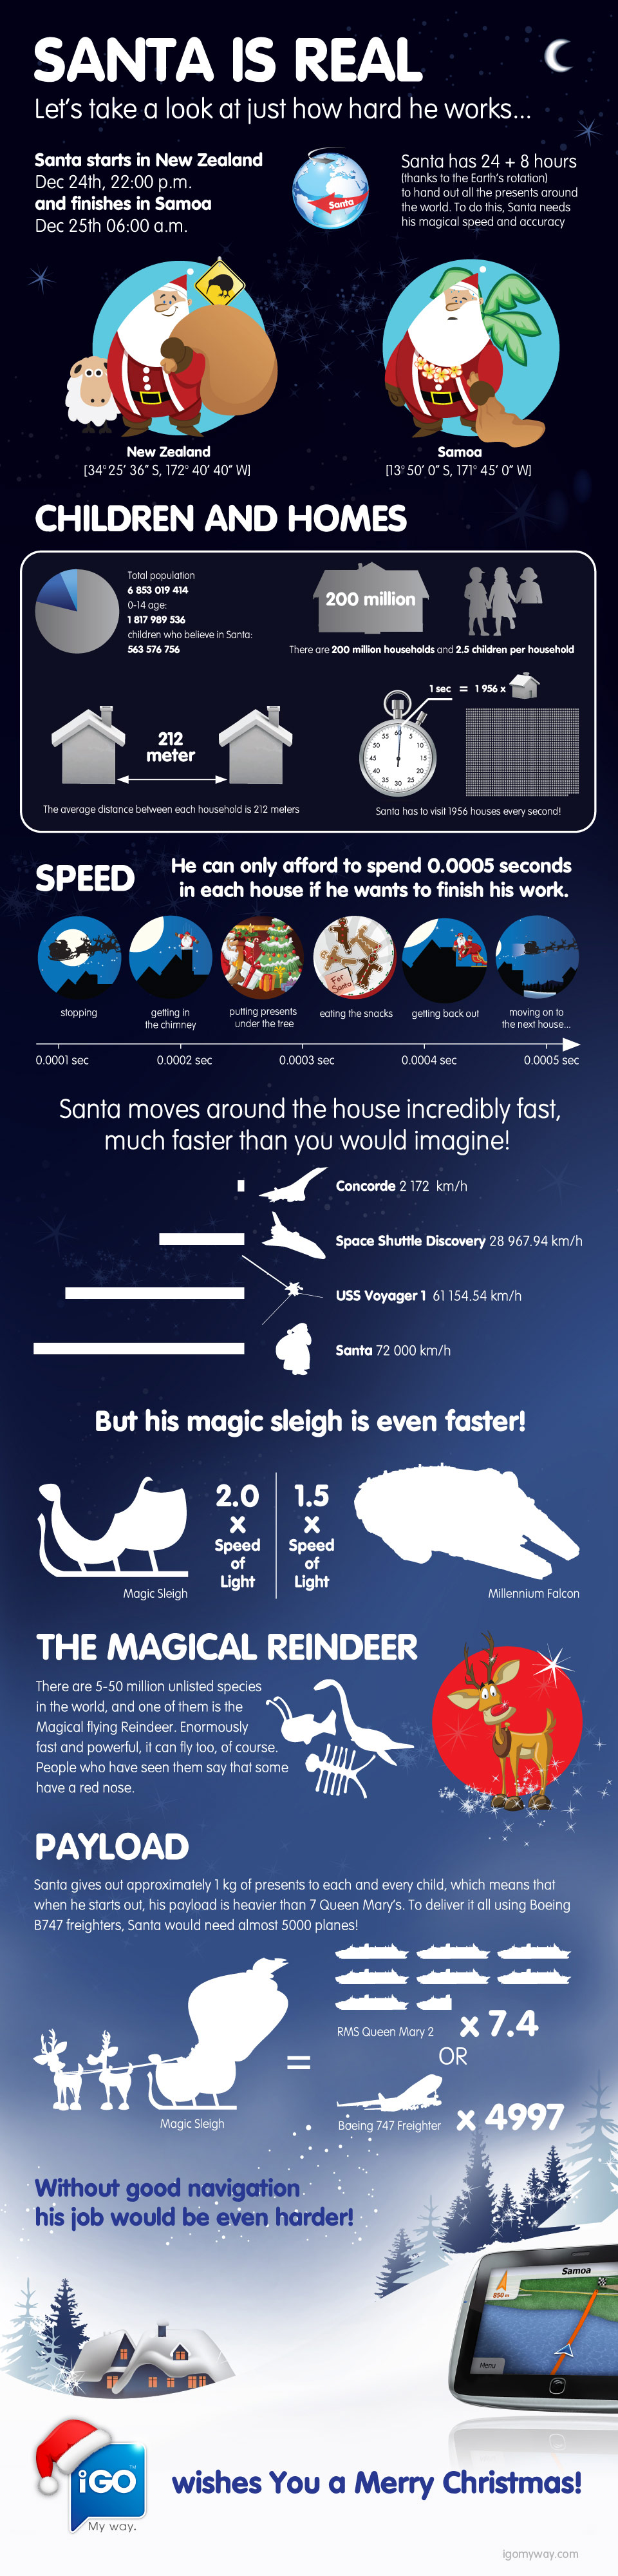 santas journey Santa: The Hardest Working Guy On the Planet (Infographic)